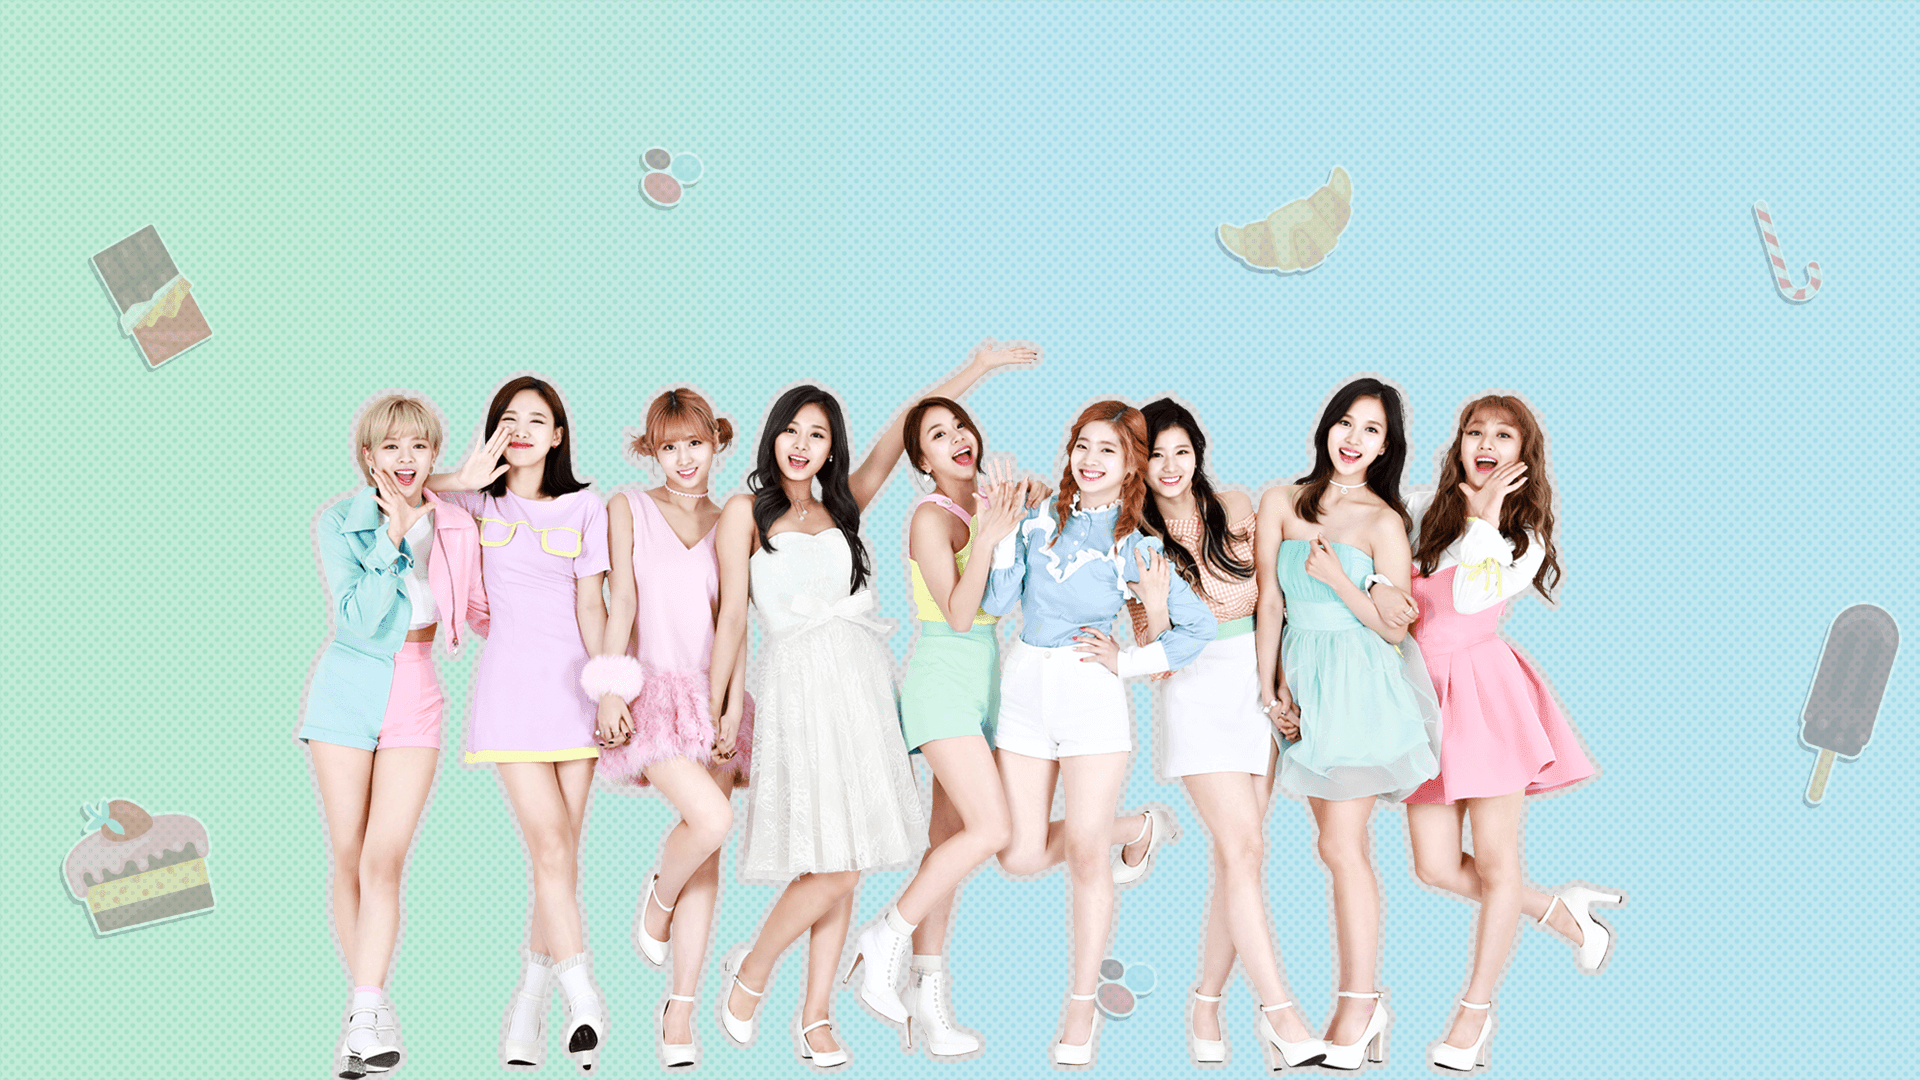 Twice 2018 Wallpapers Wallpaper Cave